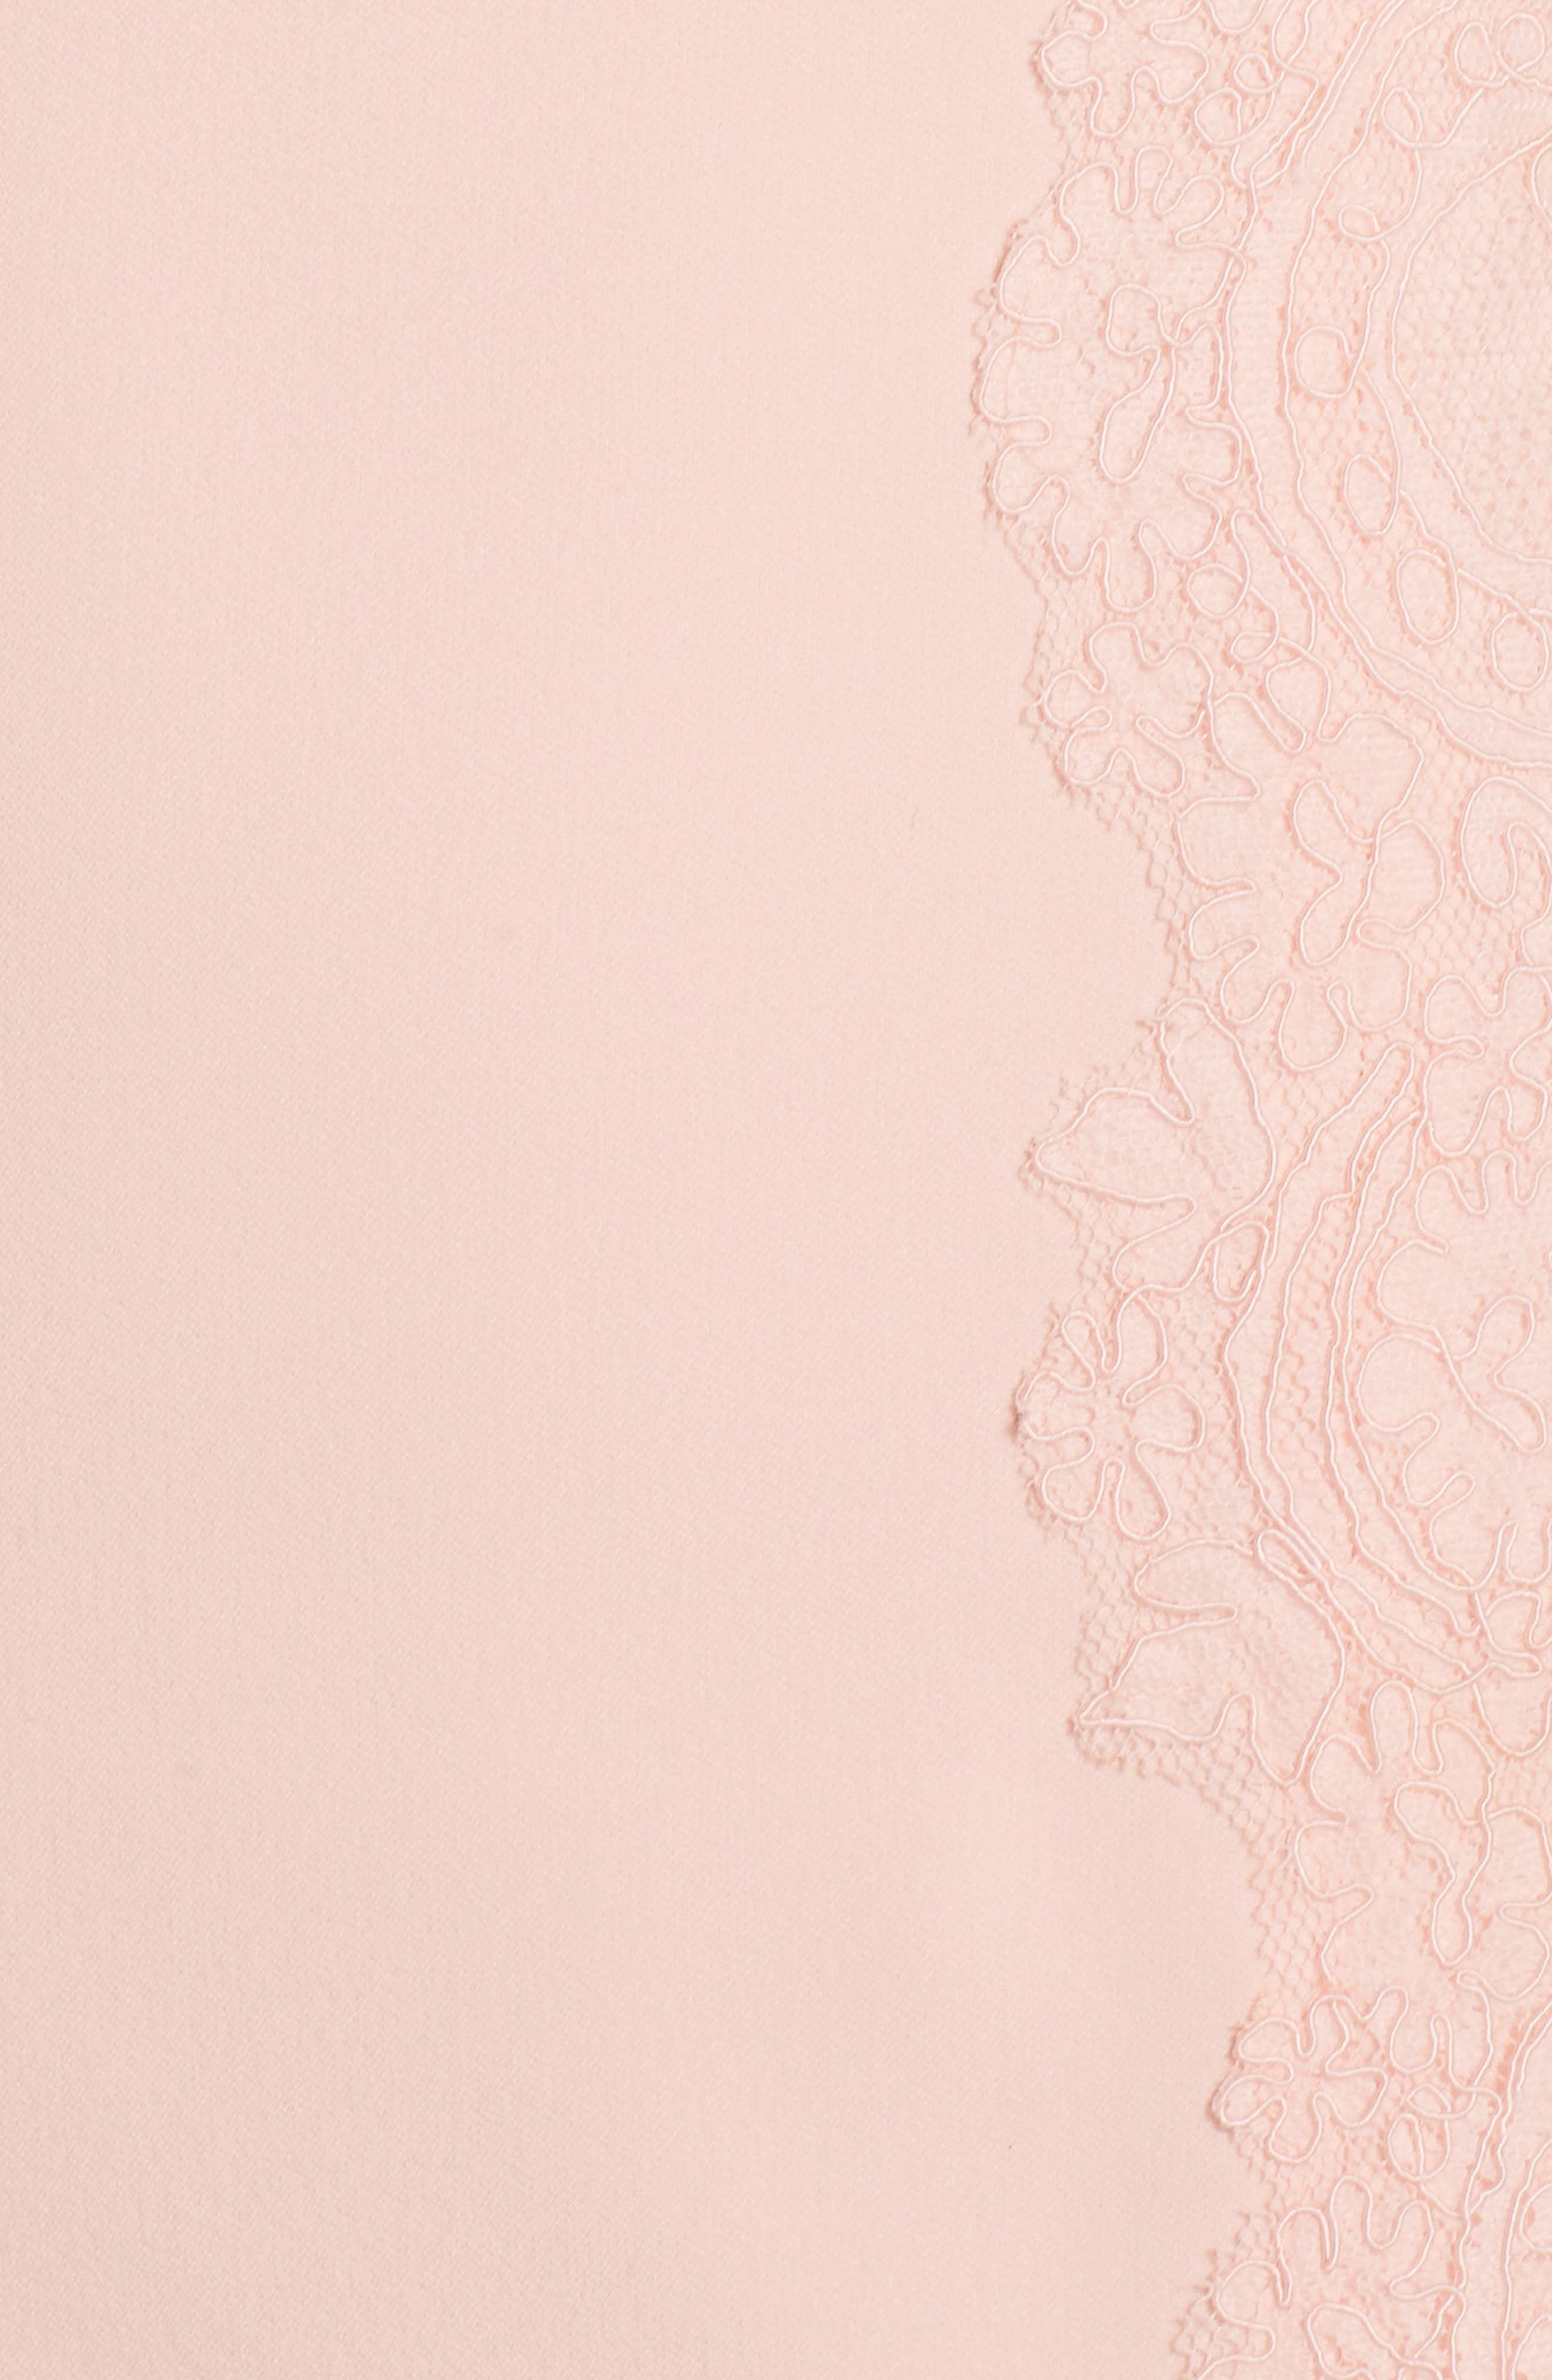 Lace Detail Crepe Sheath Dress,                             Alternate thumbnail 6, color,                             BLUSH